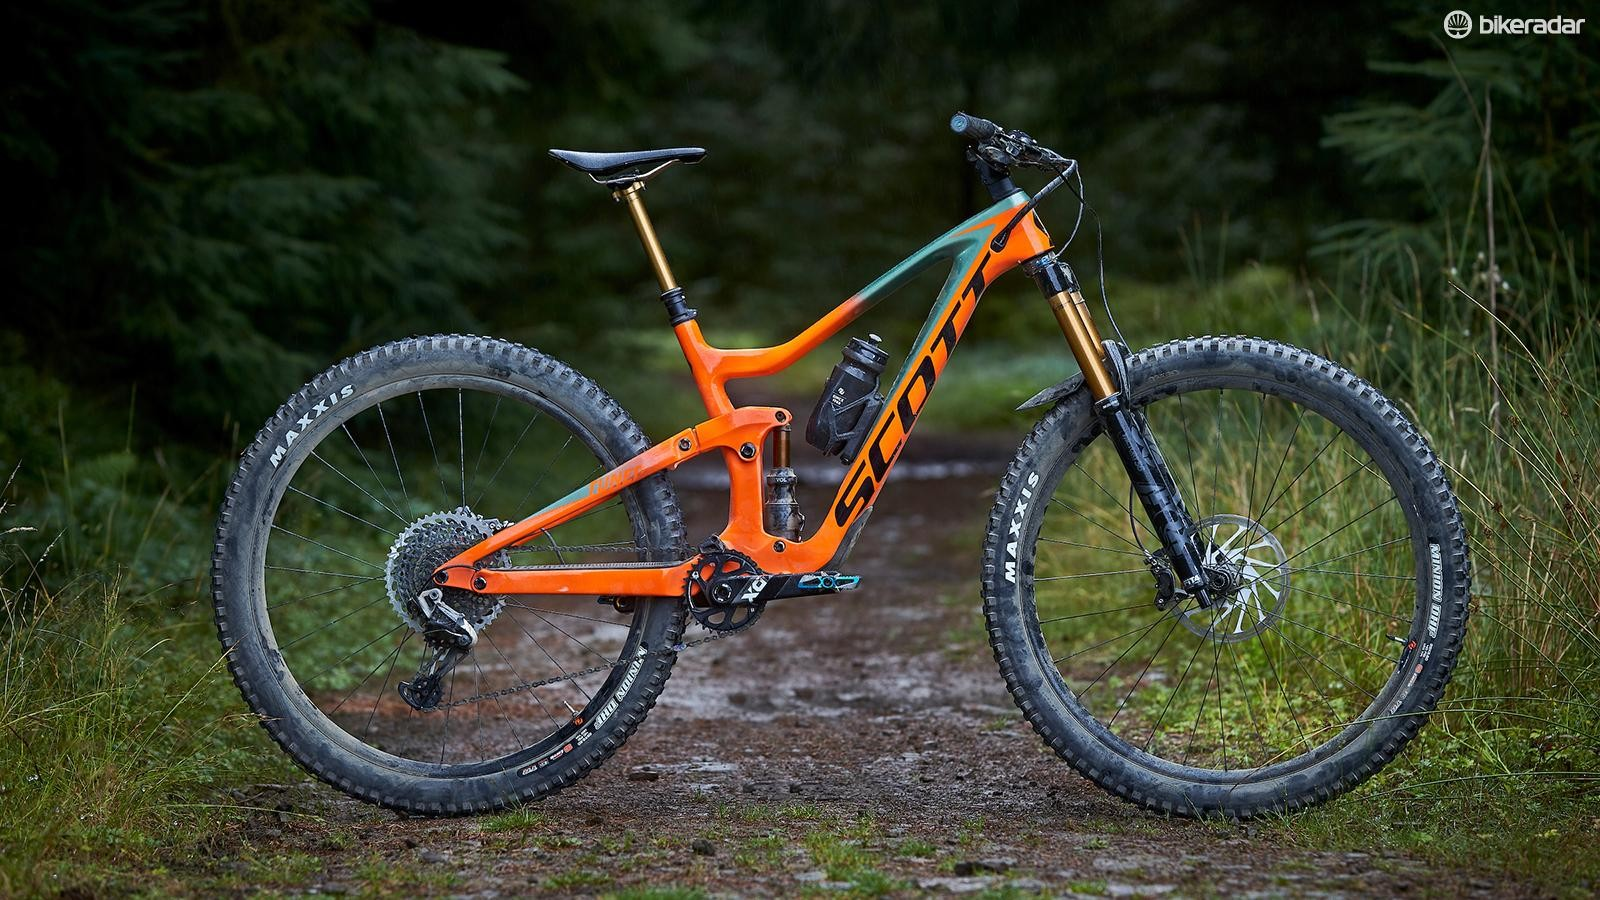 While the new Ransom looks very similar to the Genius, it's burlier frame and 170mm of travel mean it's ready tackle some seriously technical, gravity fuelled riding